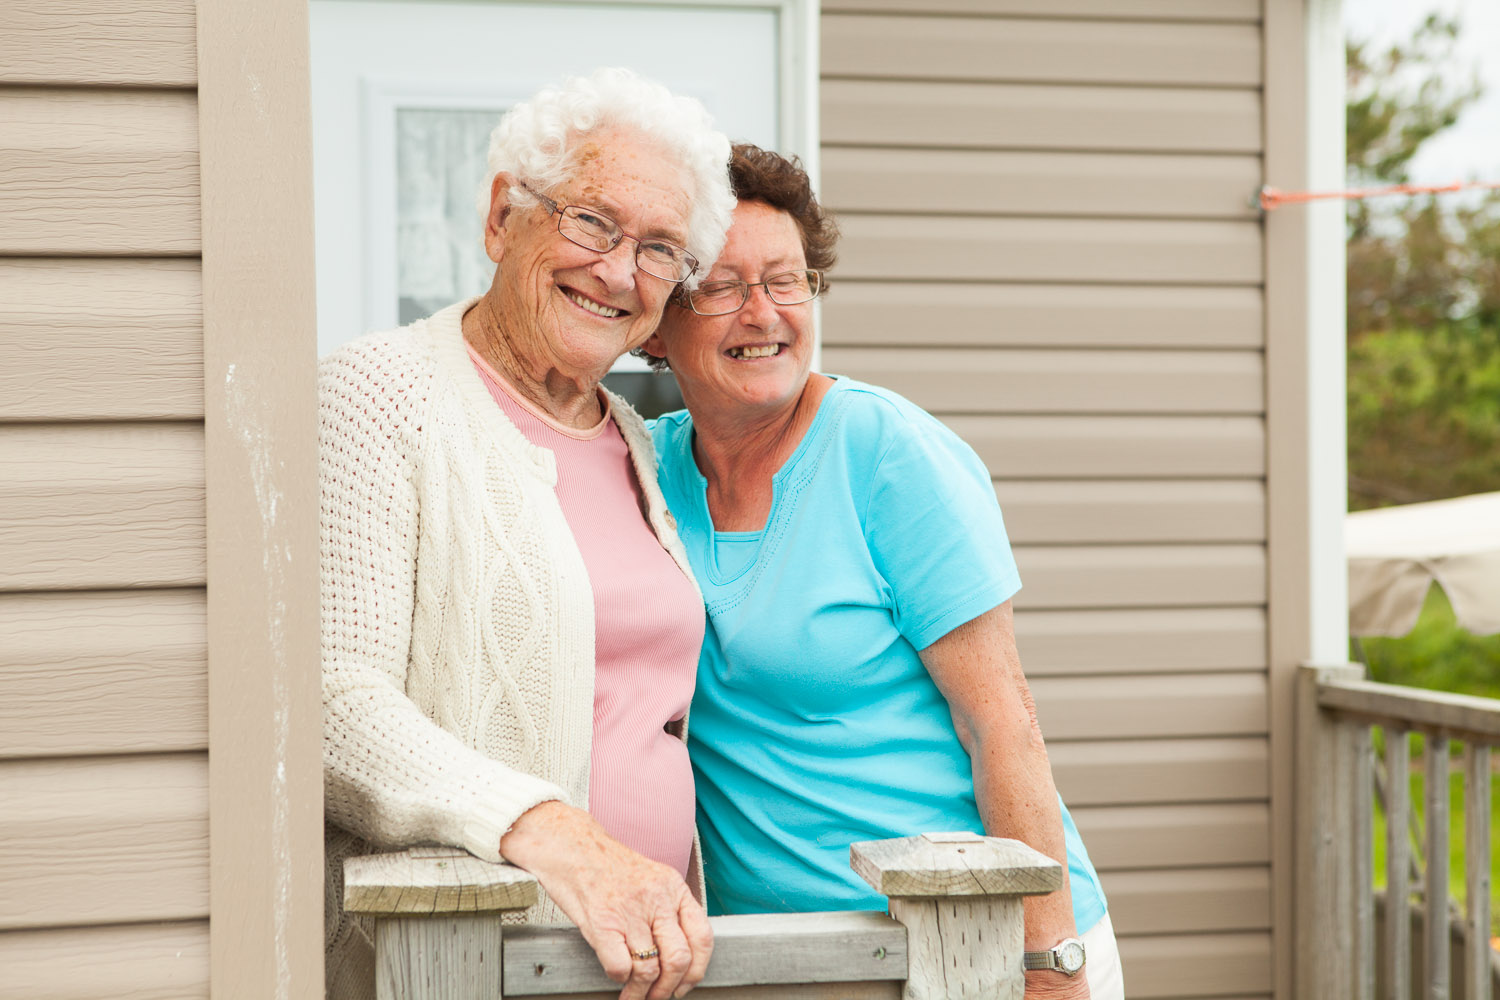 Nannie and Susie Tanner of Black Rock, two of the most lovely souls I came across during my trip to Nova Scotia.